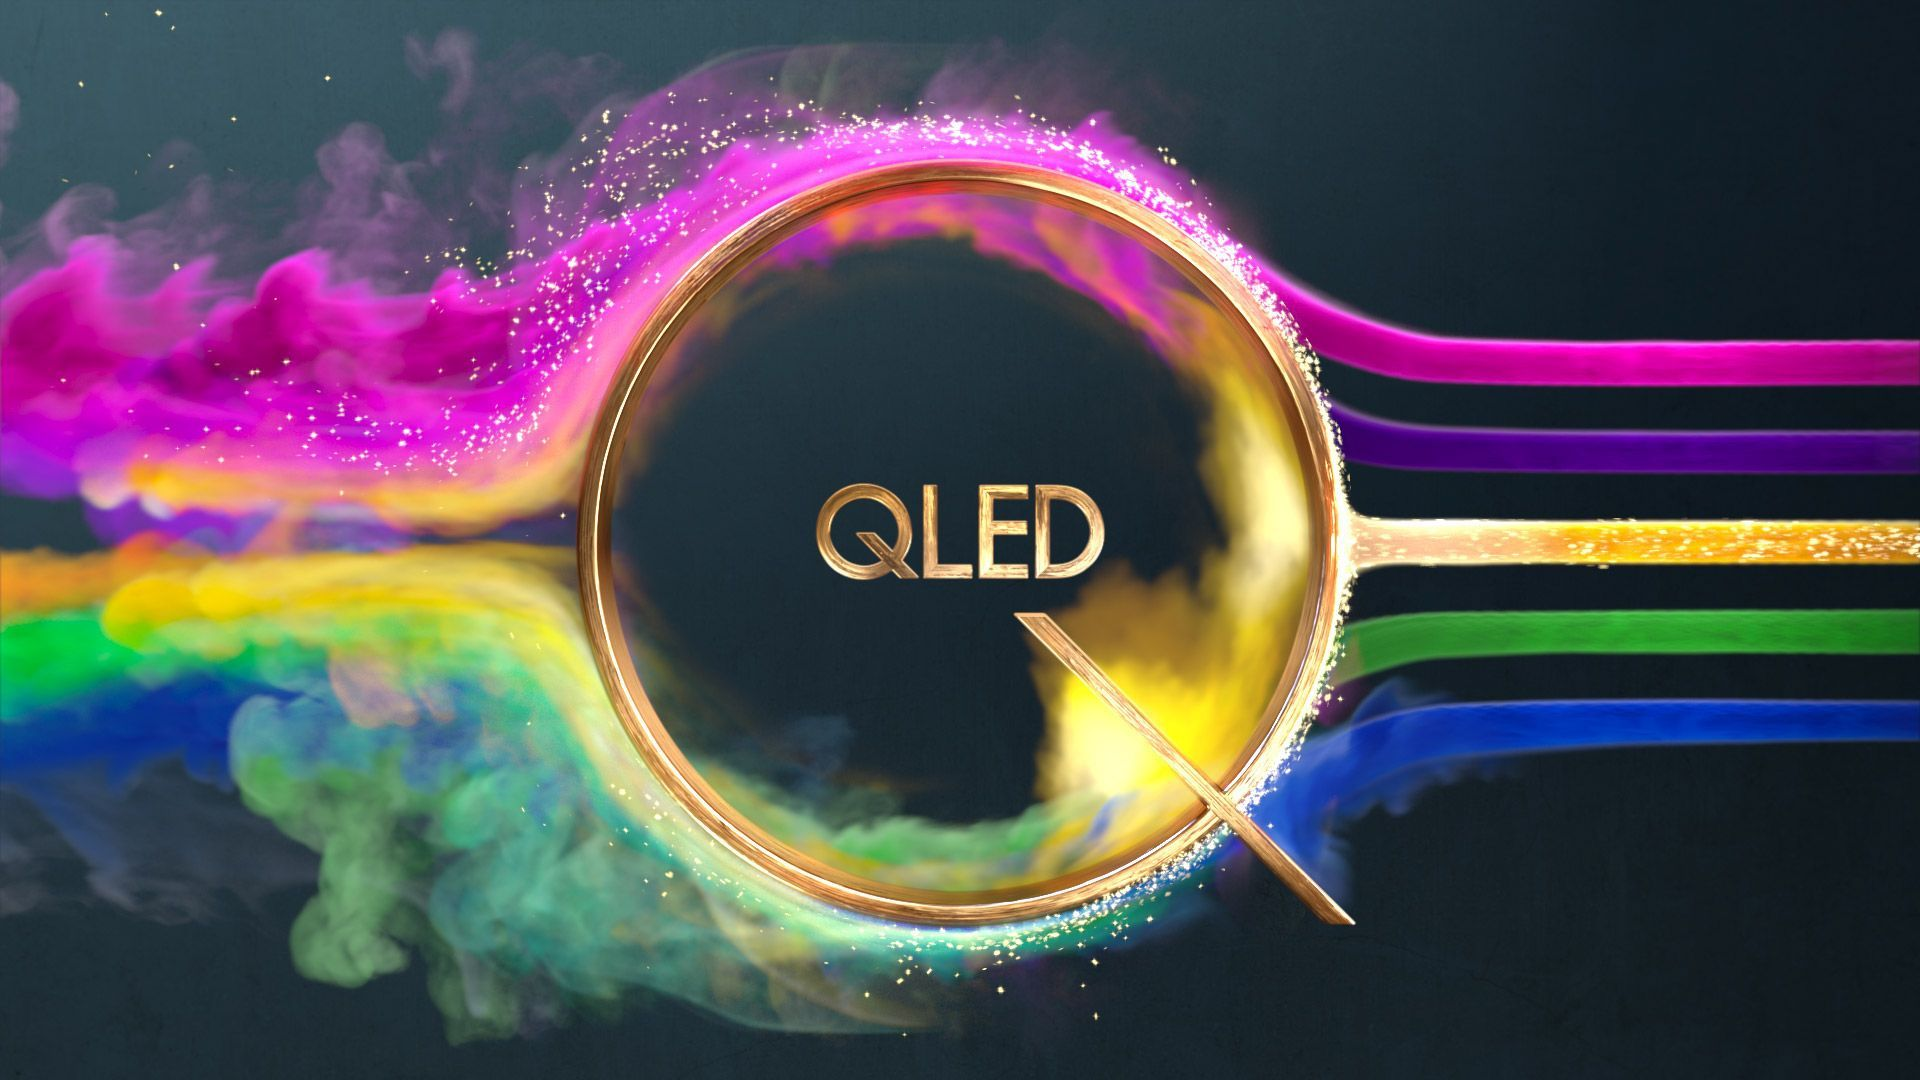 Qled Wallpapers Top Free Qled Backgrounds Wallpaperaccess